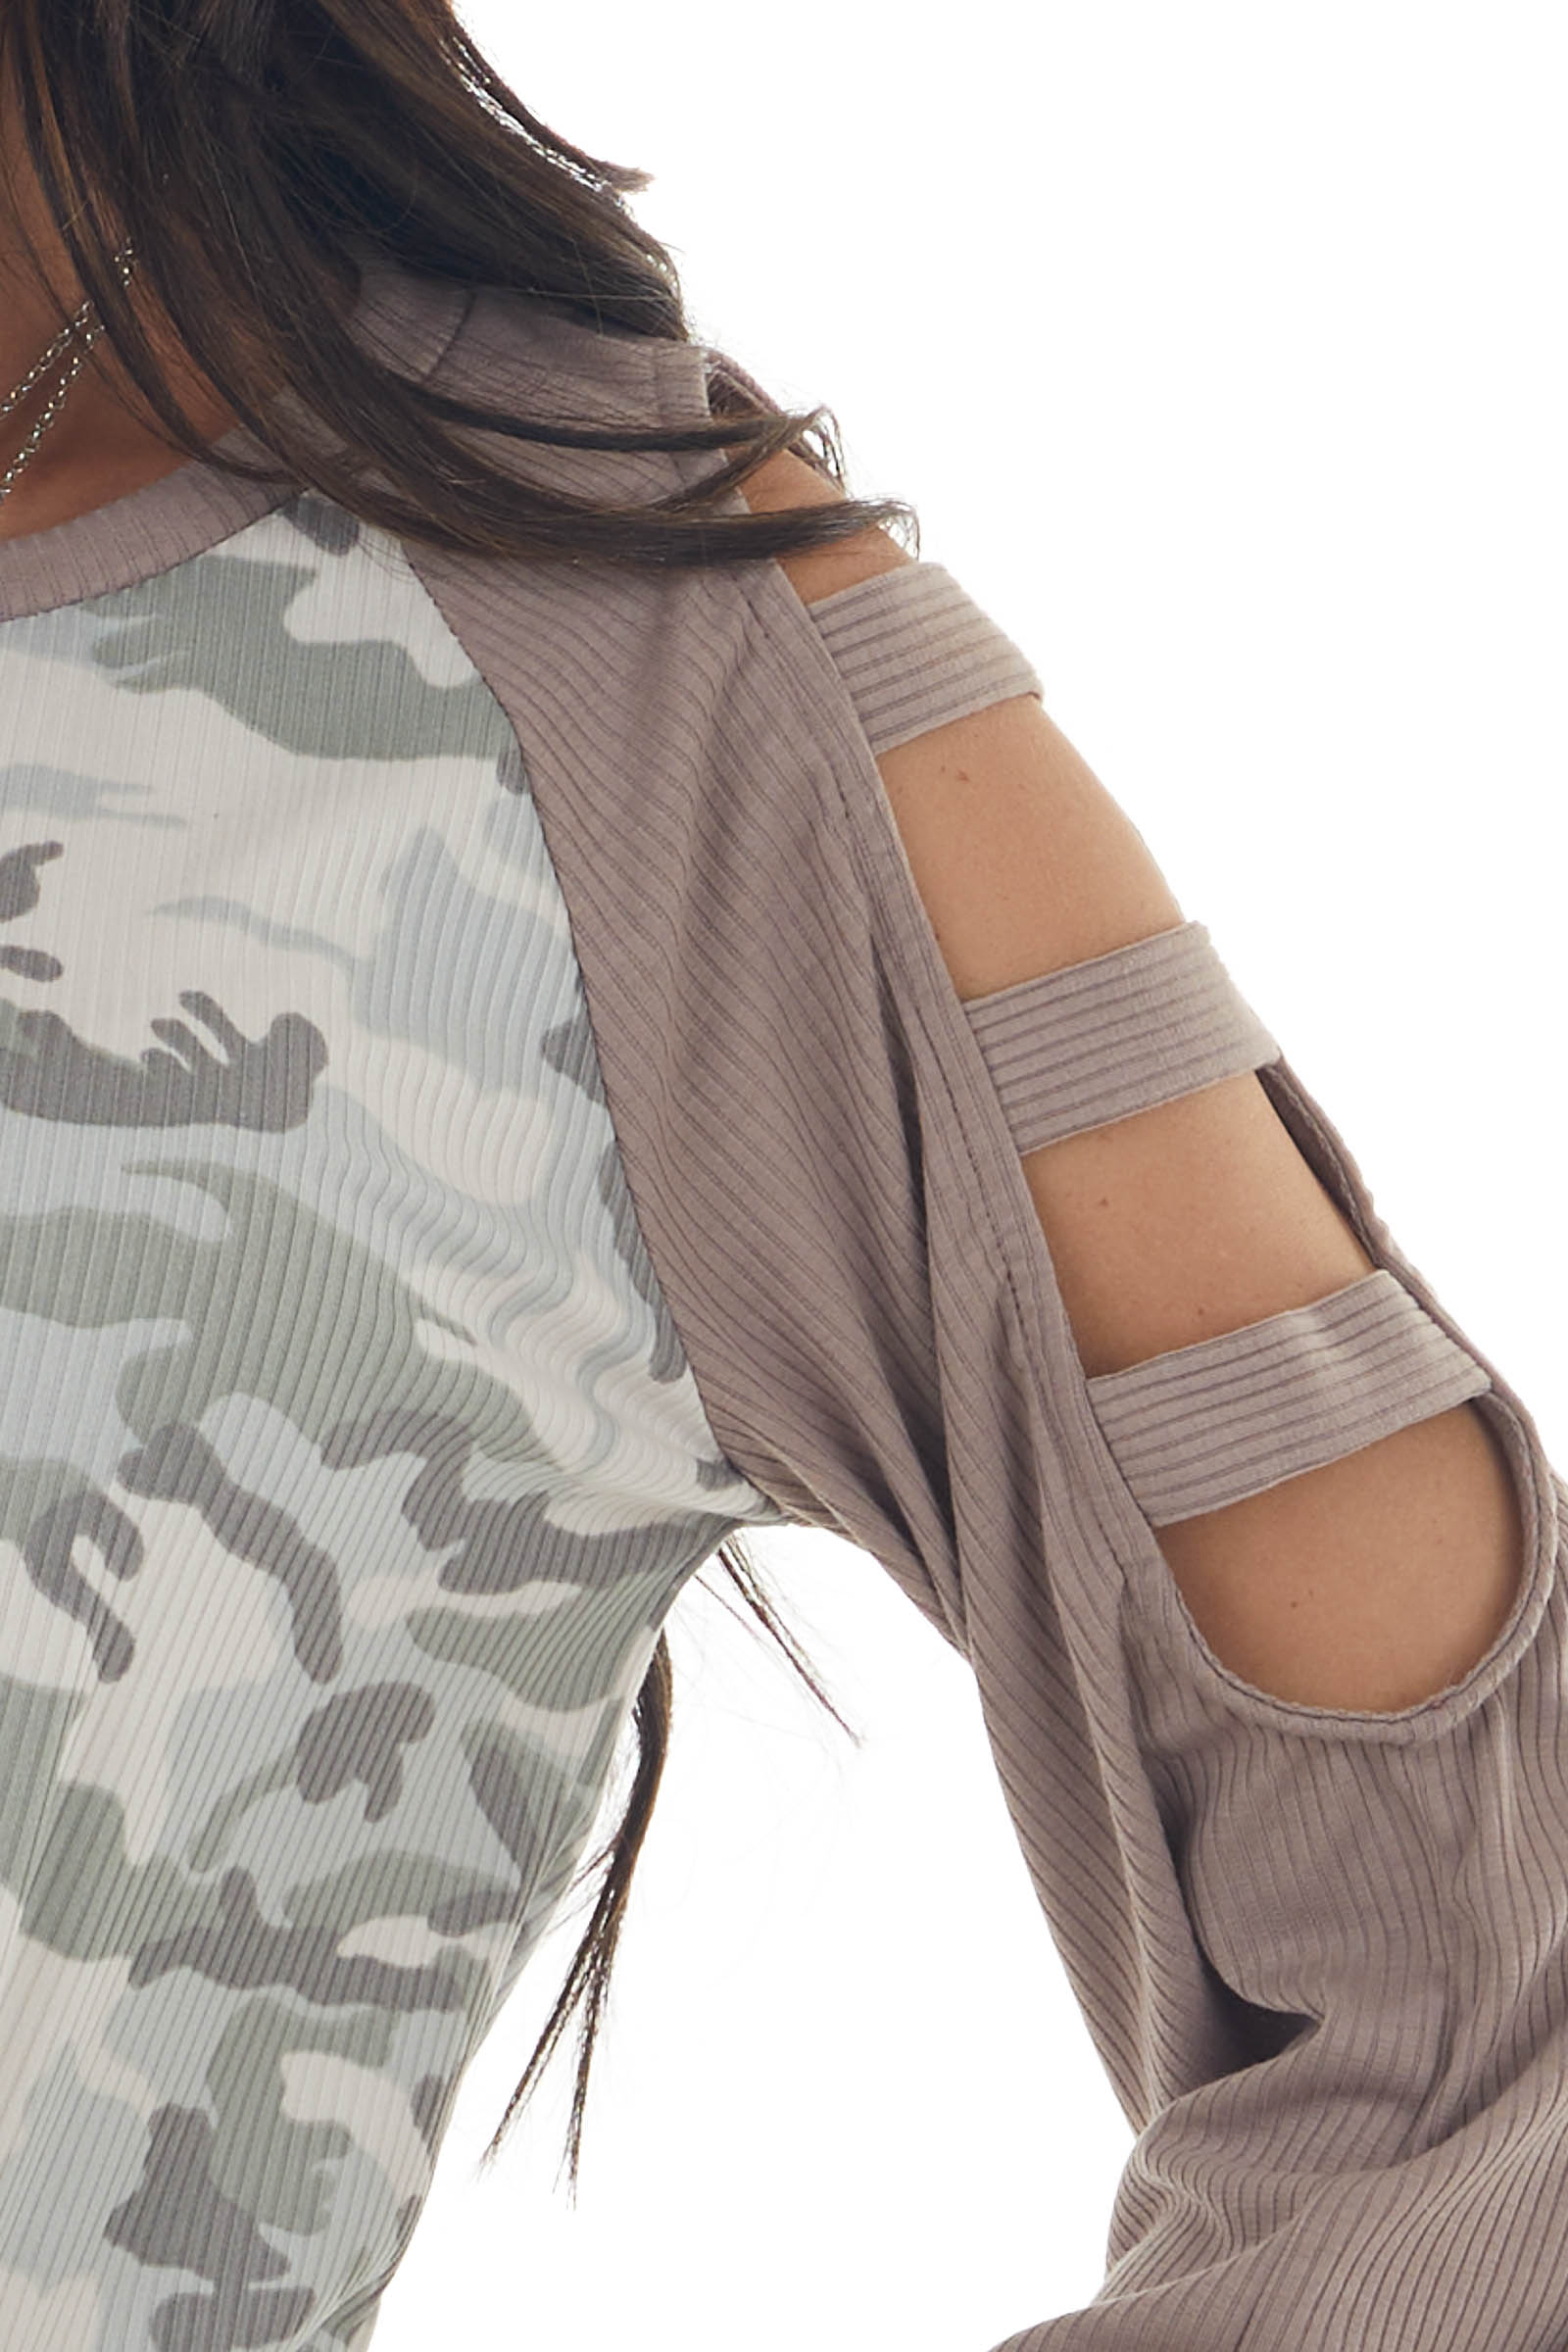 Juniper Camo Top with Ladder Cutout Sleeves